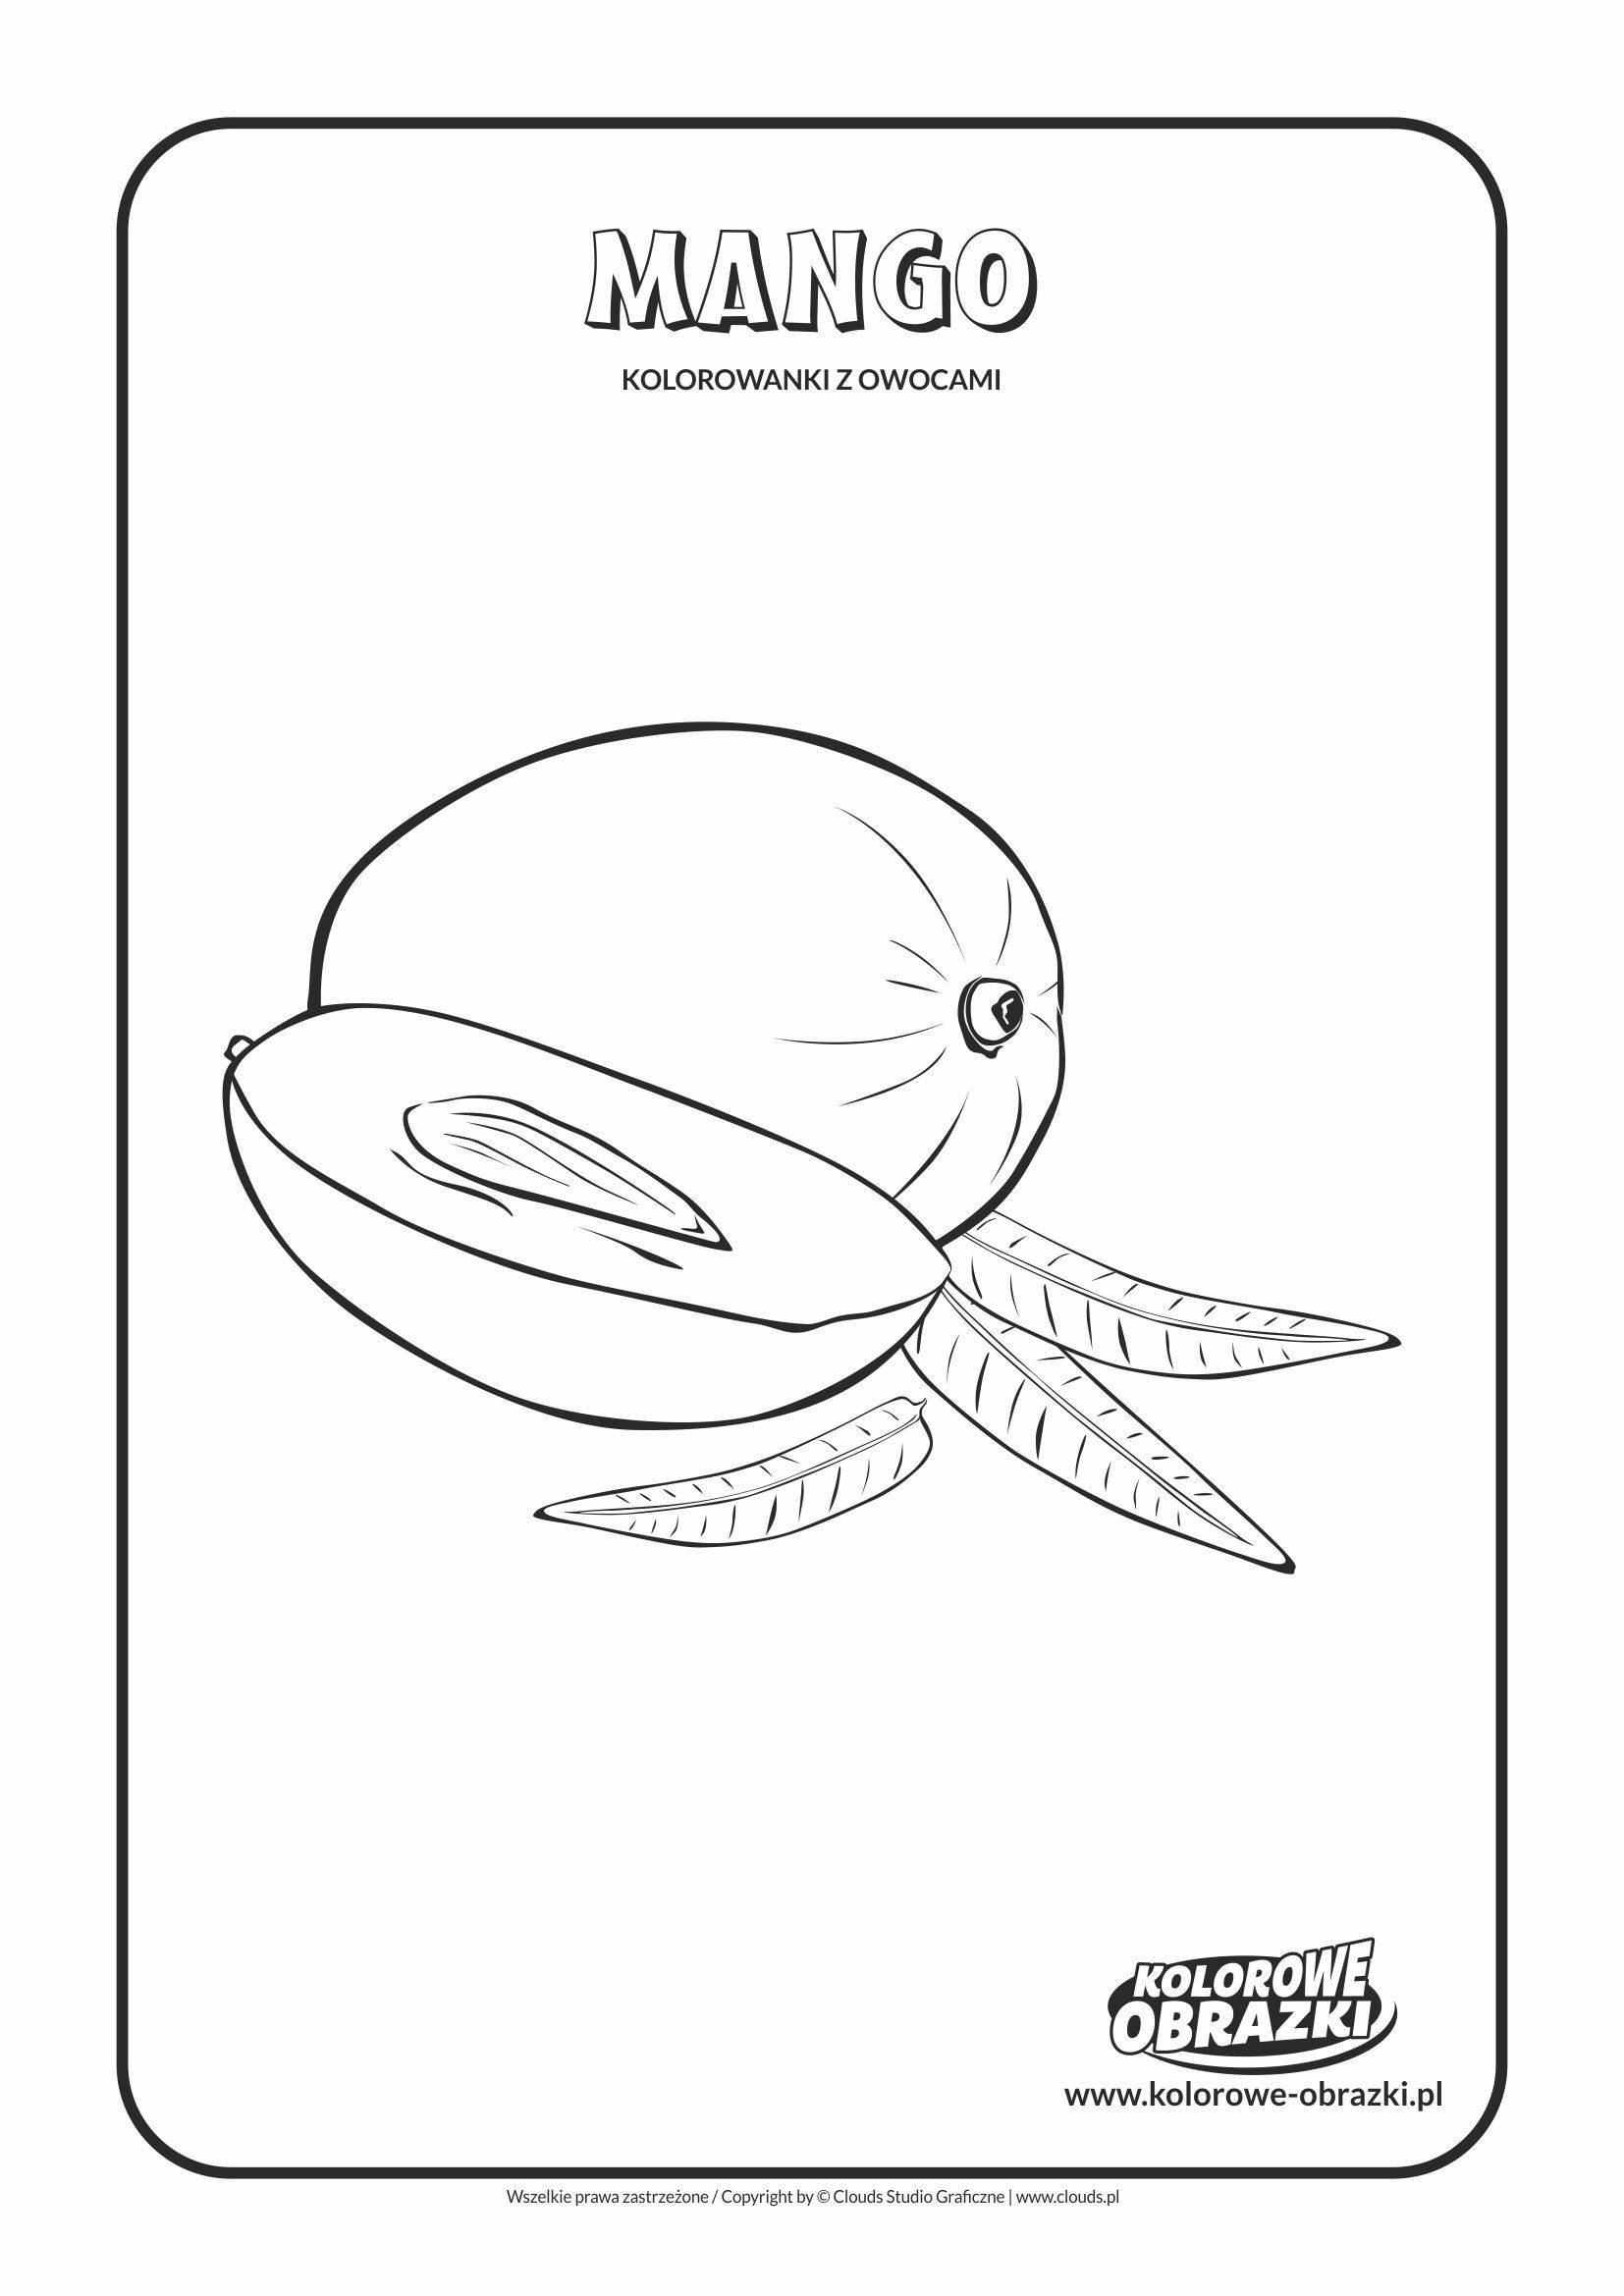 Mango Kolorowanki Dla Dzieci Coloring Pages Toddler Coloring Pages For Kids